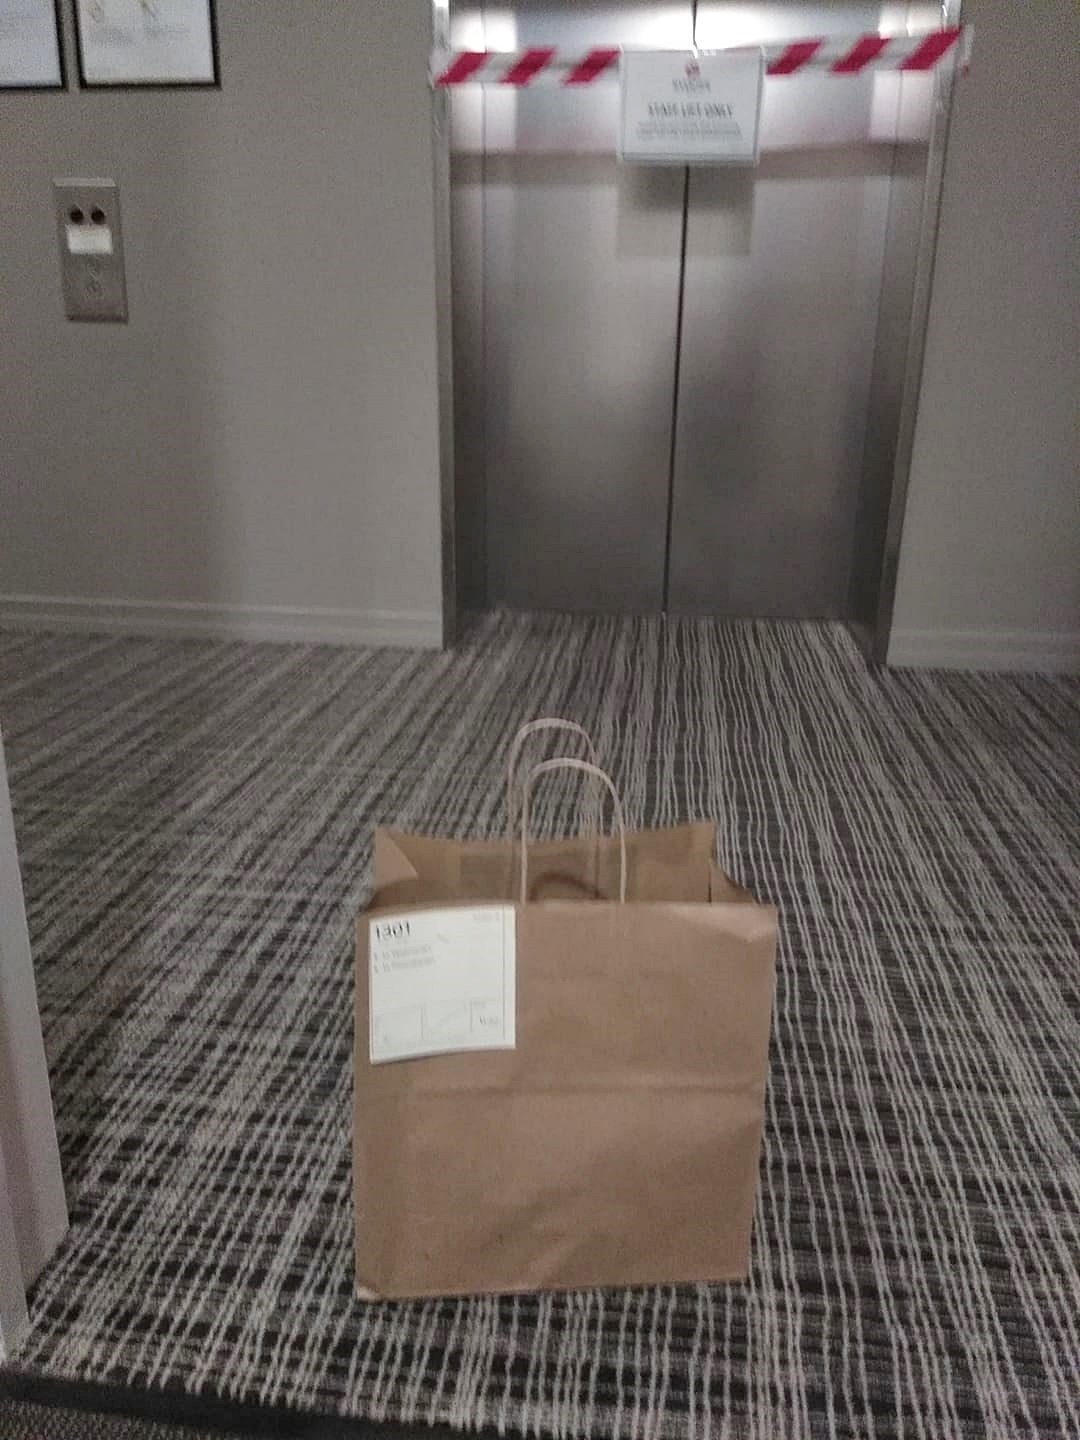 paper bag by a lift